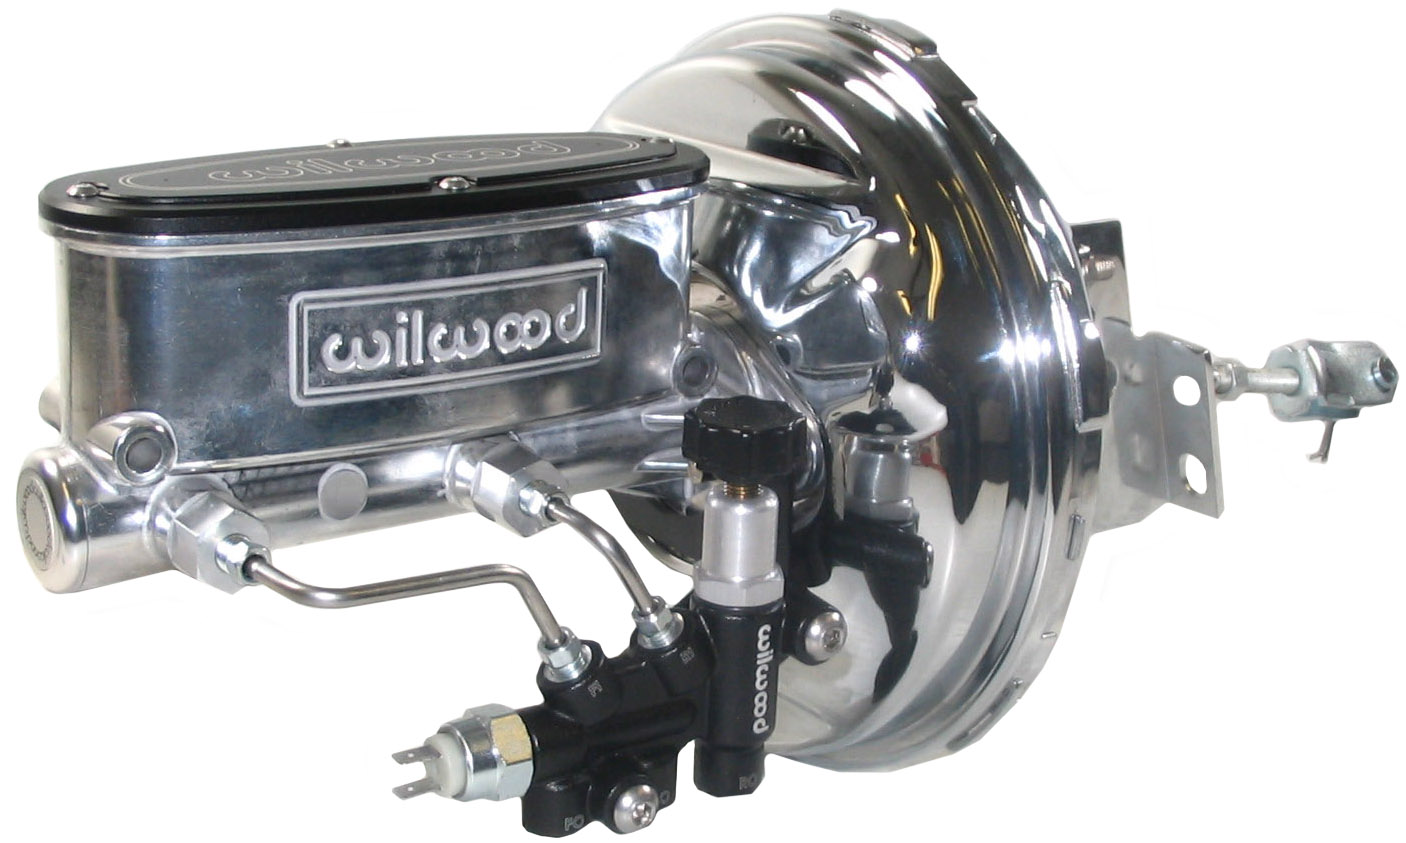 New Suspension Wilwood Brake Set W Spindlesarmscurrie Rear End 65 El Camino Fuse Box Picture Endposi687264 Ebay